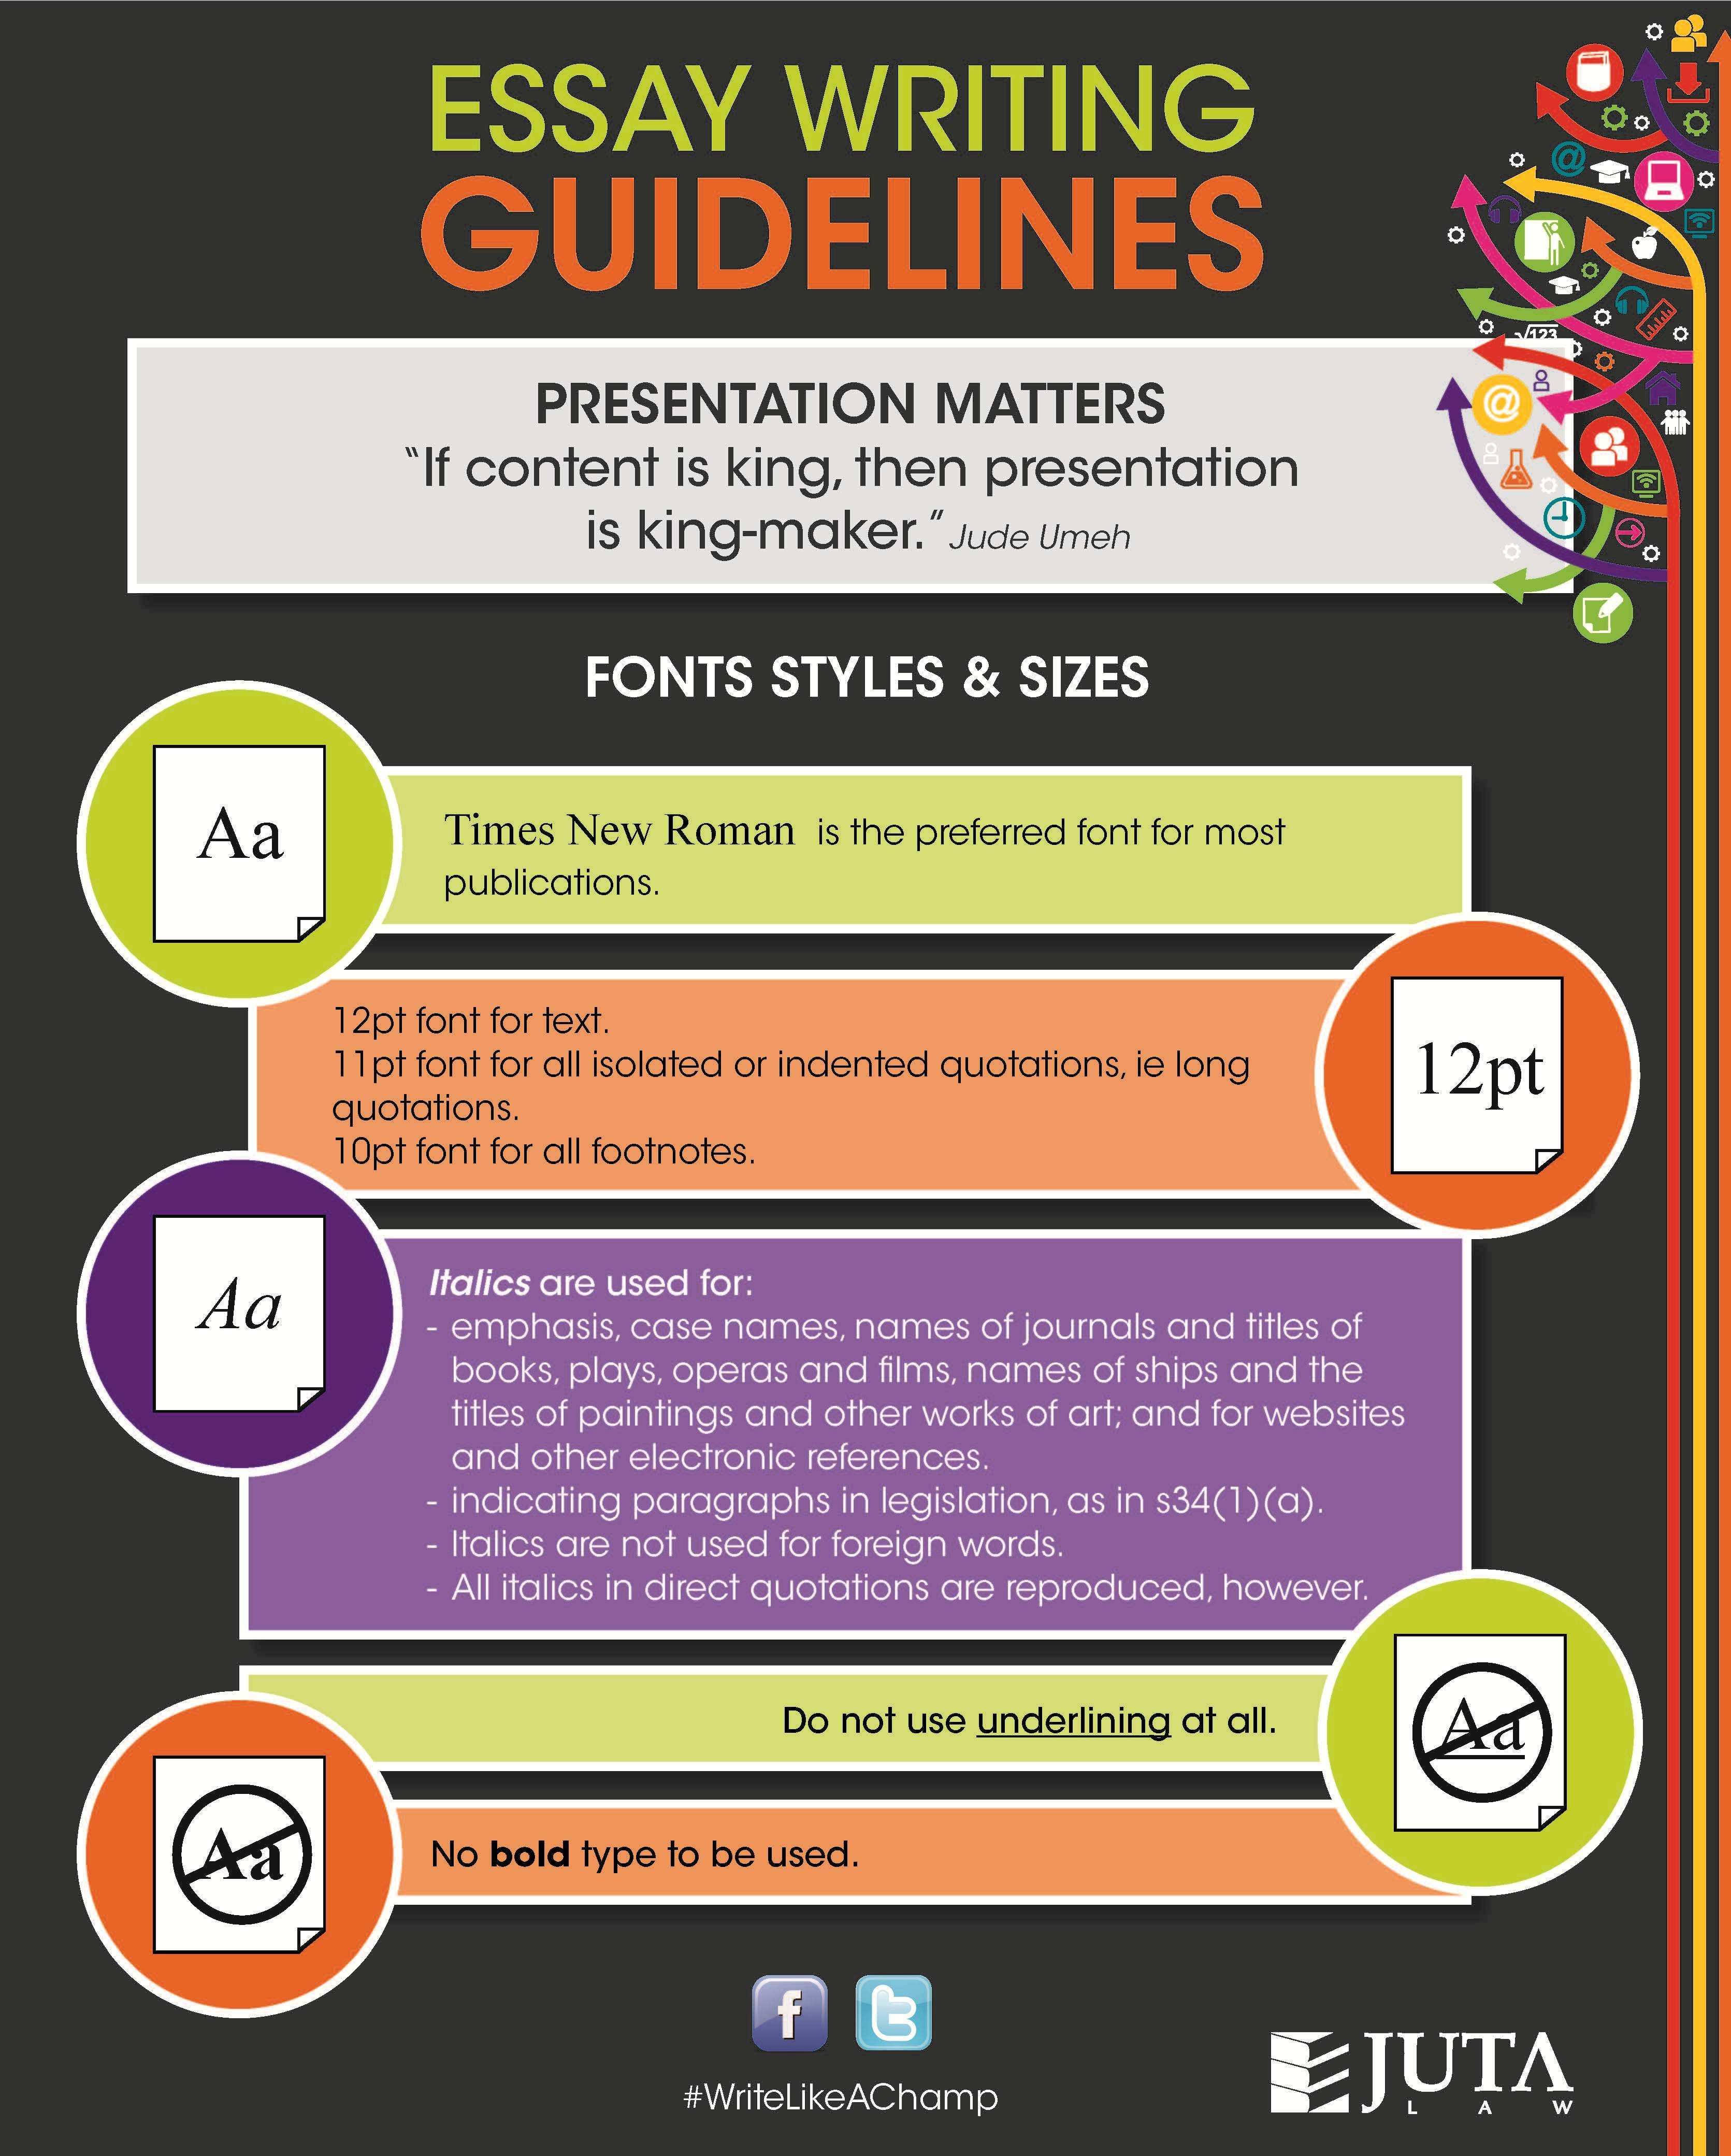 presentation matters make sure your font styles and sizes are make sure your font styles and sizes are correct